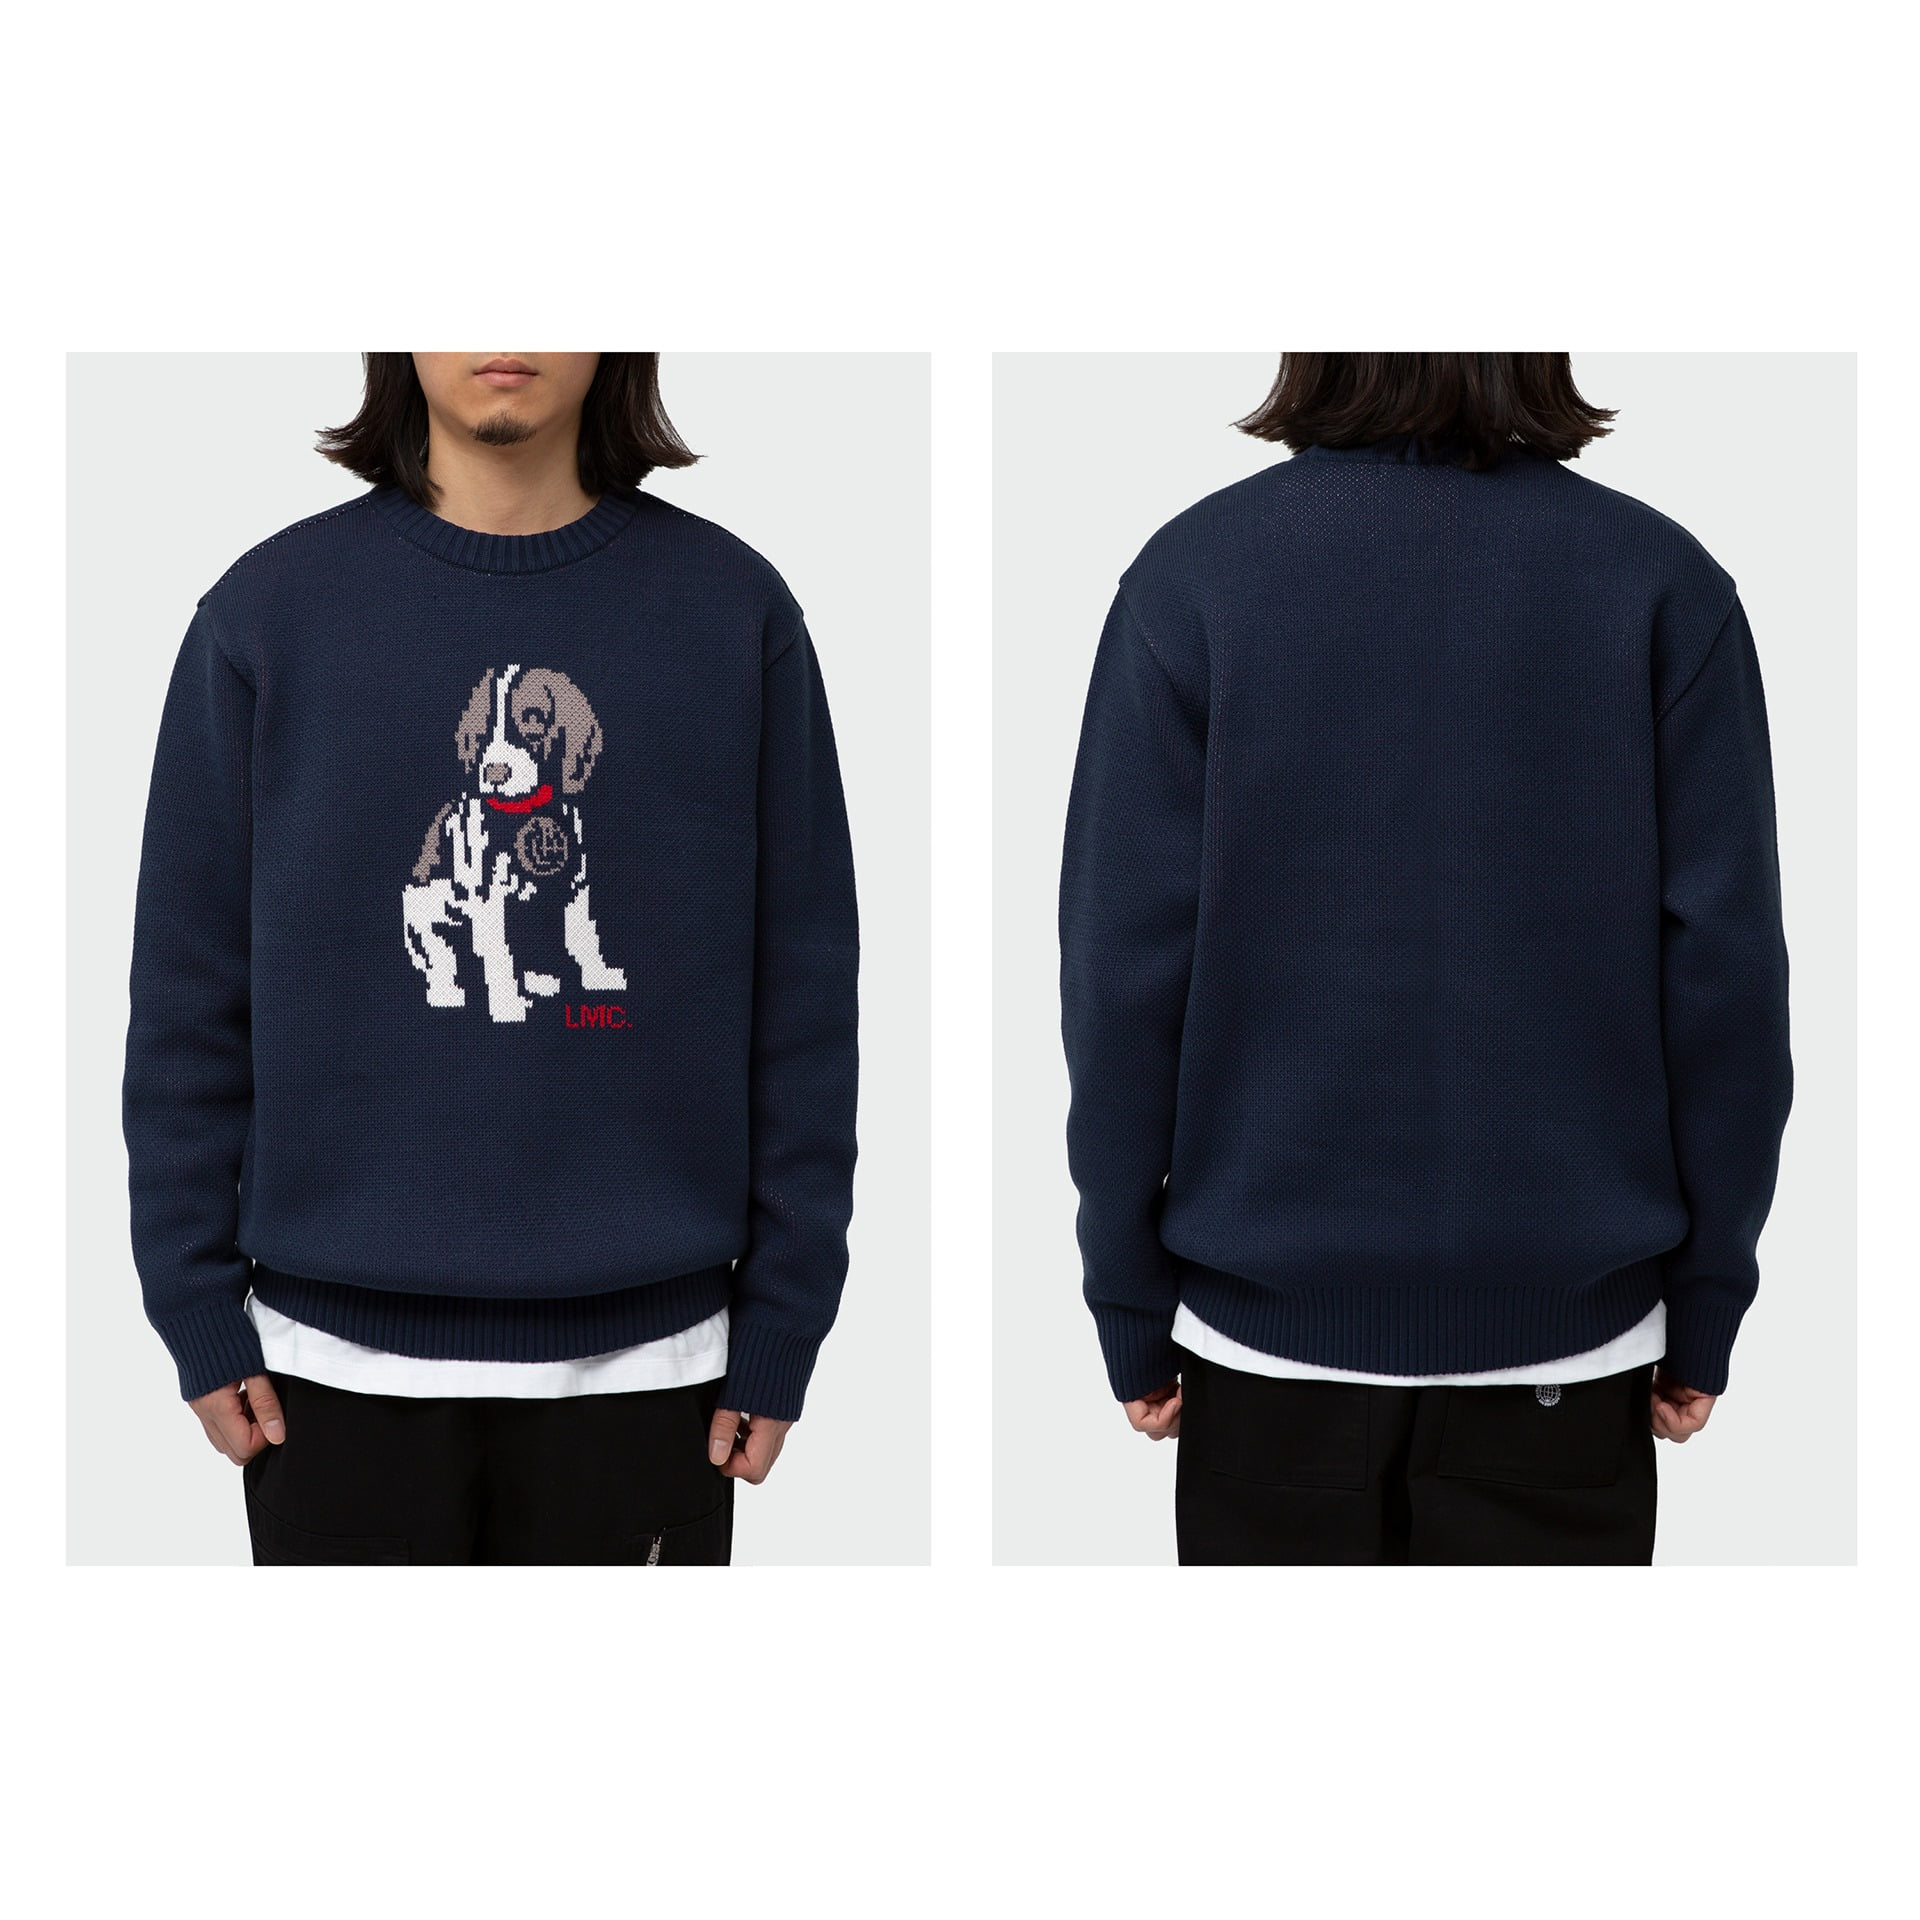 LMC BEAGLE KNIT SWEATER navy